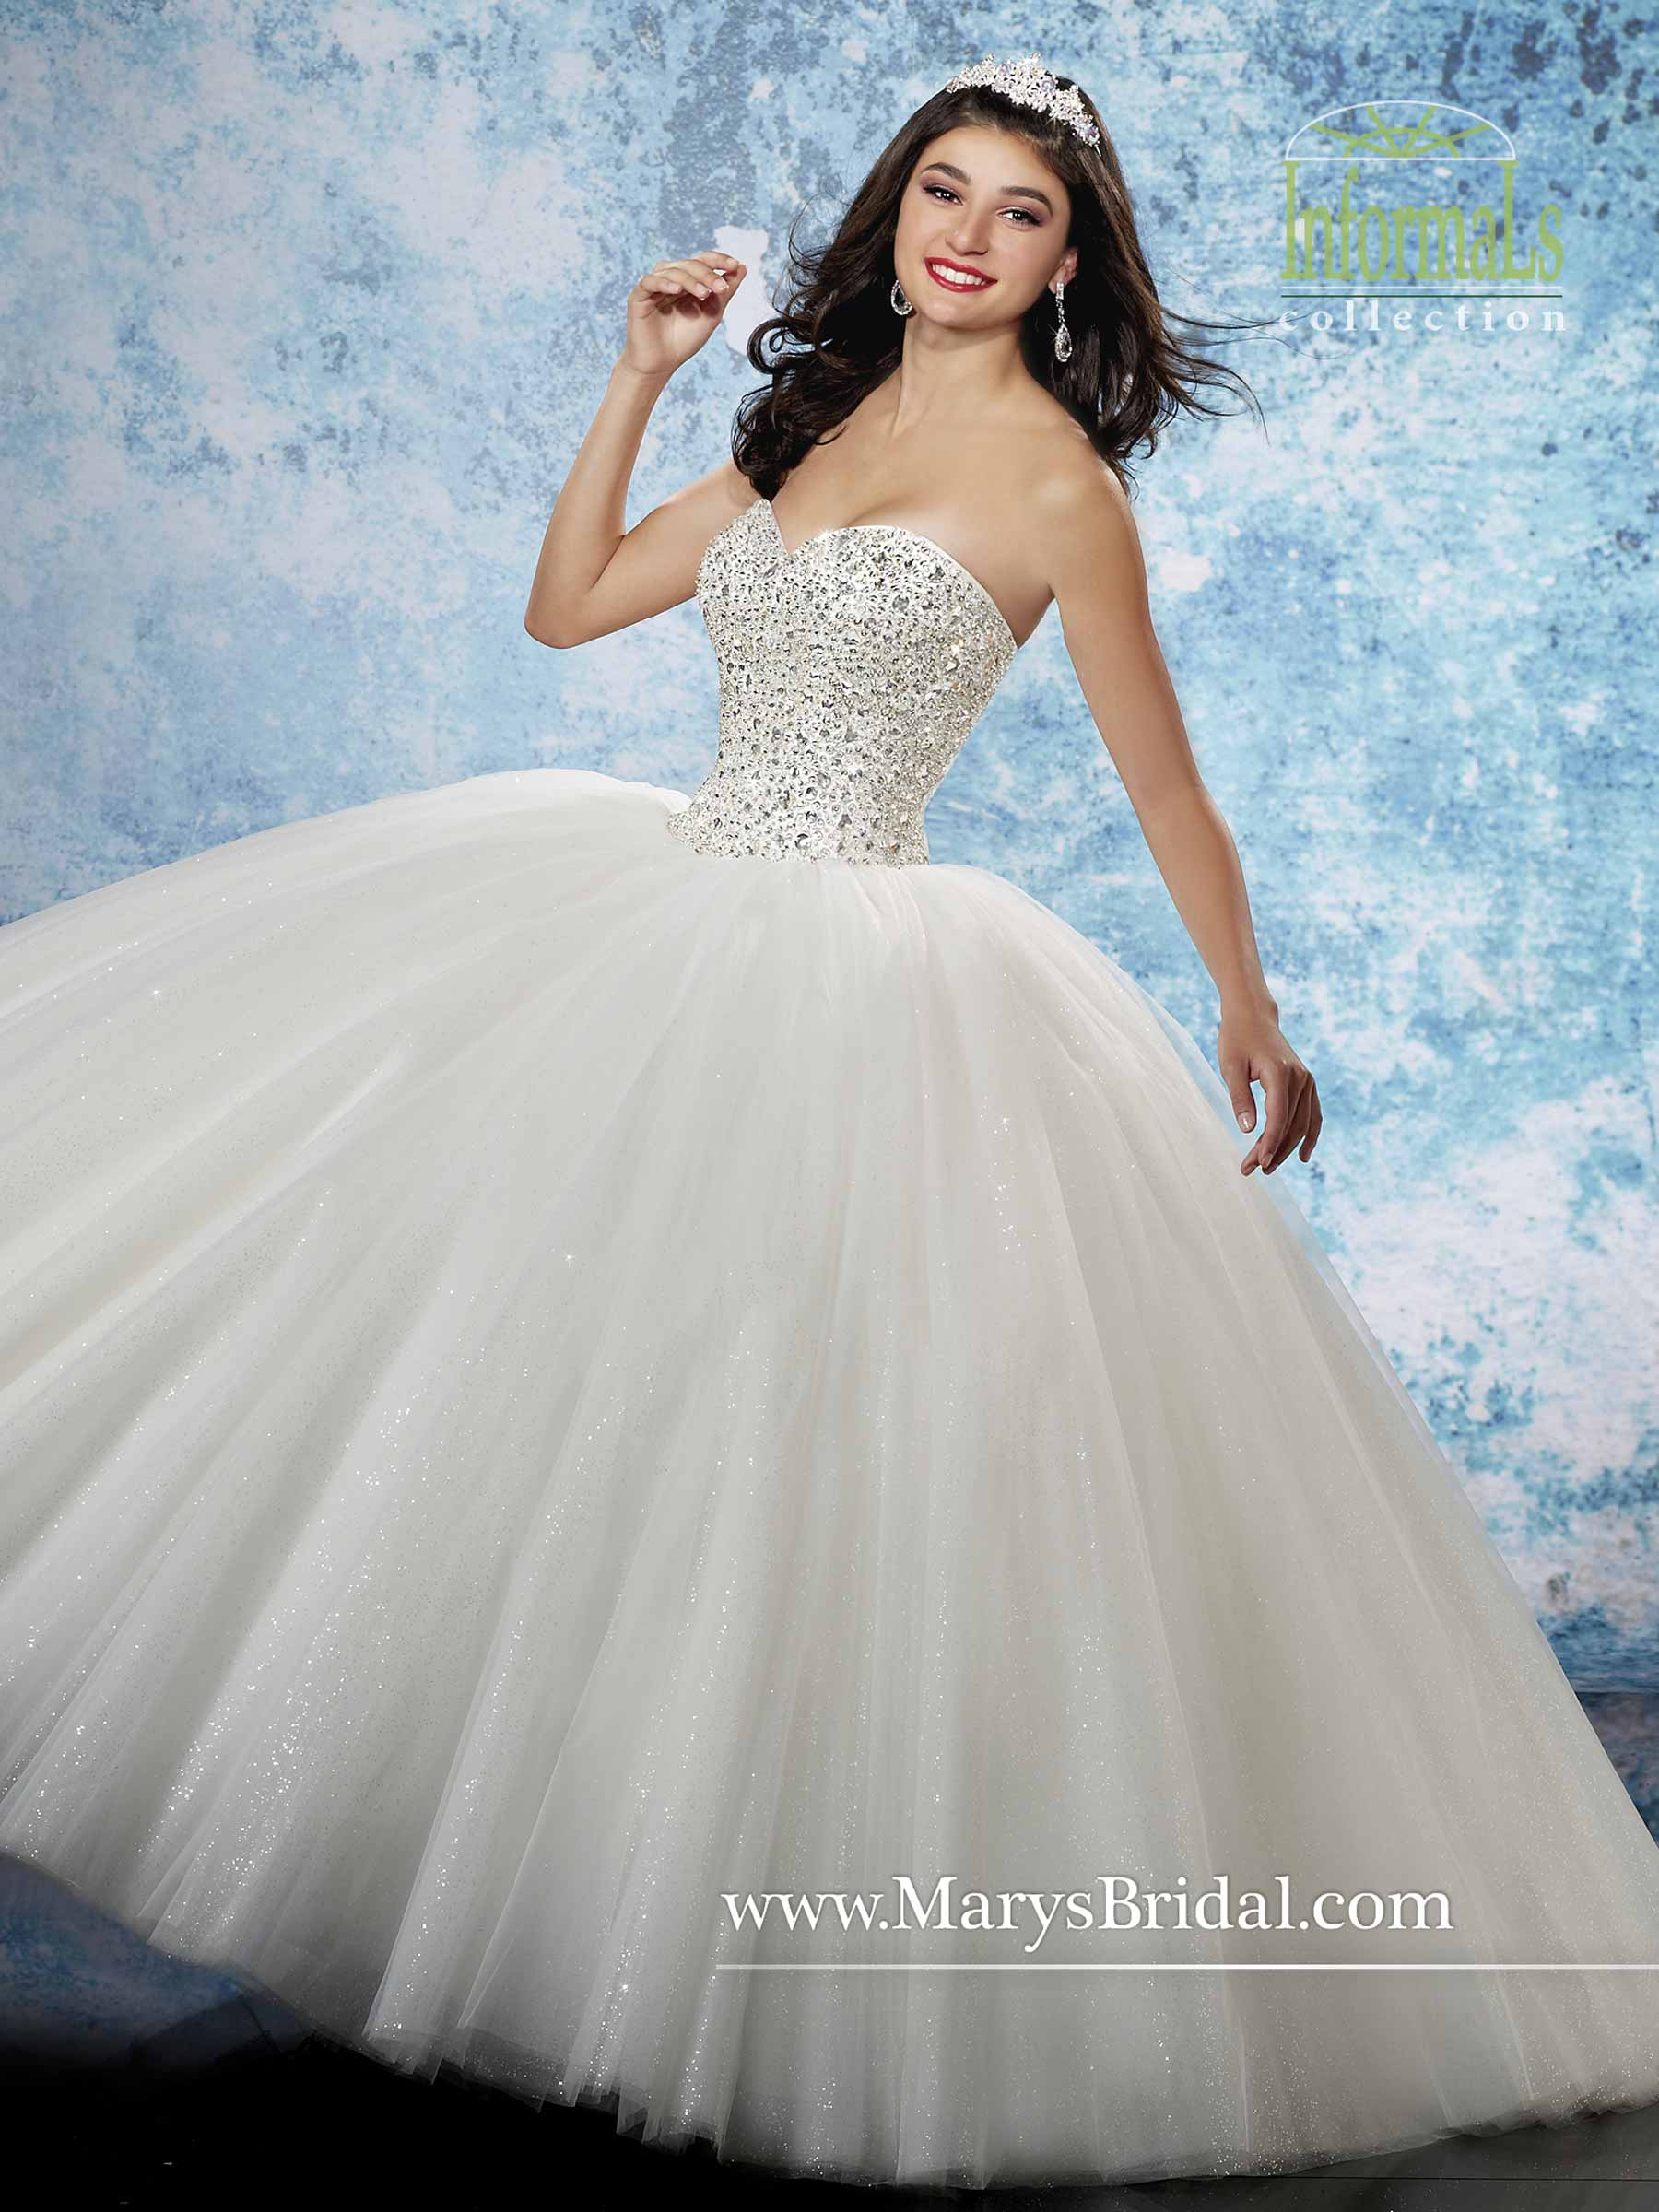 Bridal Ball Gowns | Style - 2B800 in Light Blue, Ivory, or White Color